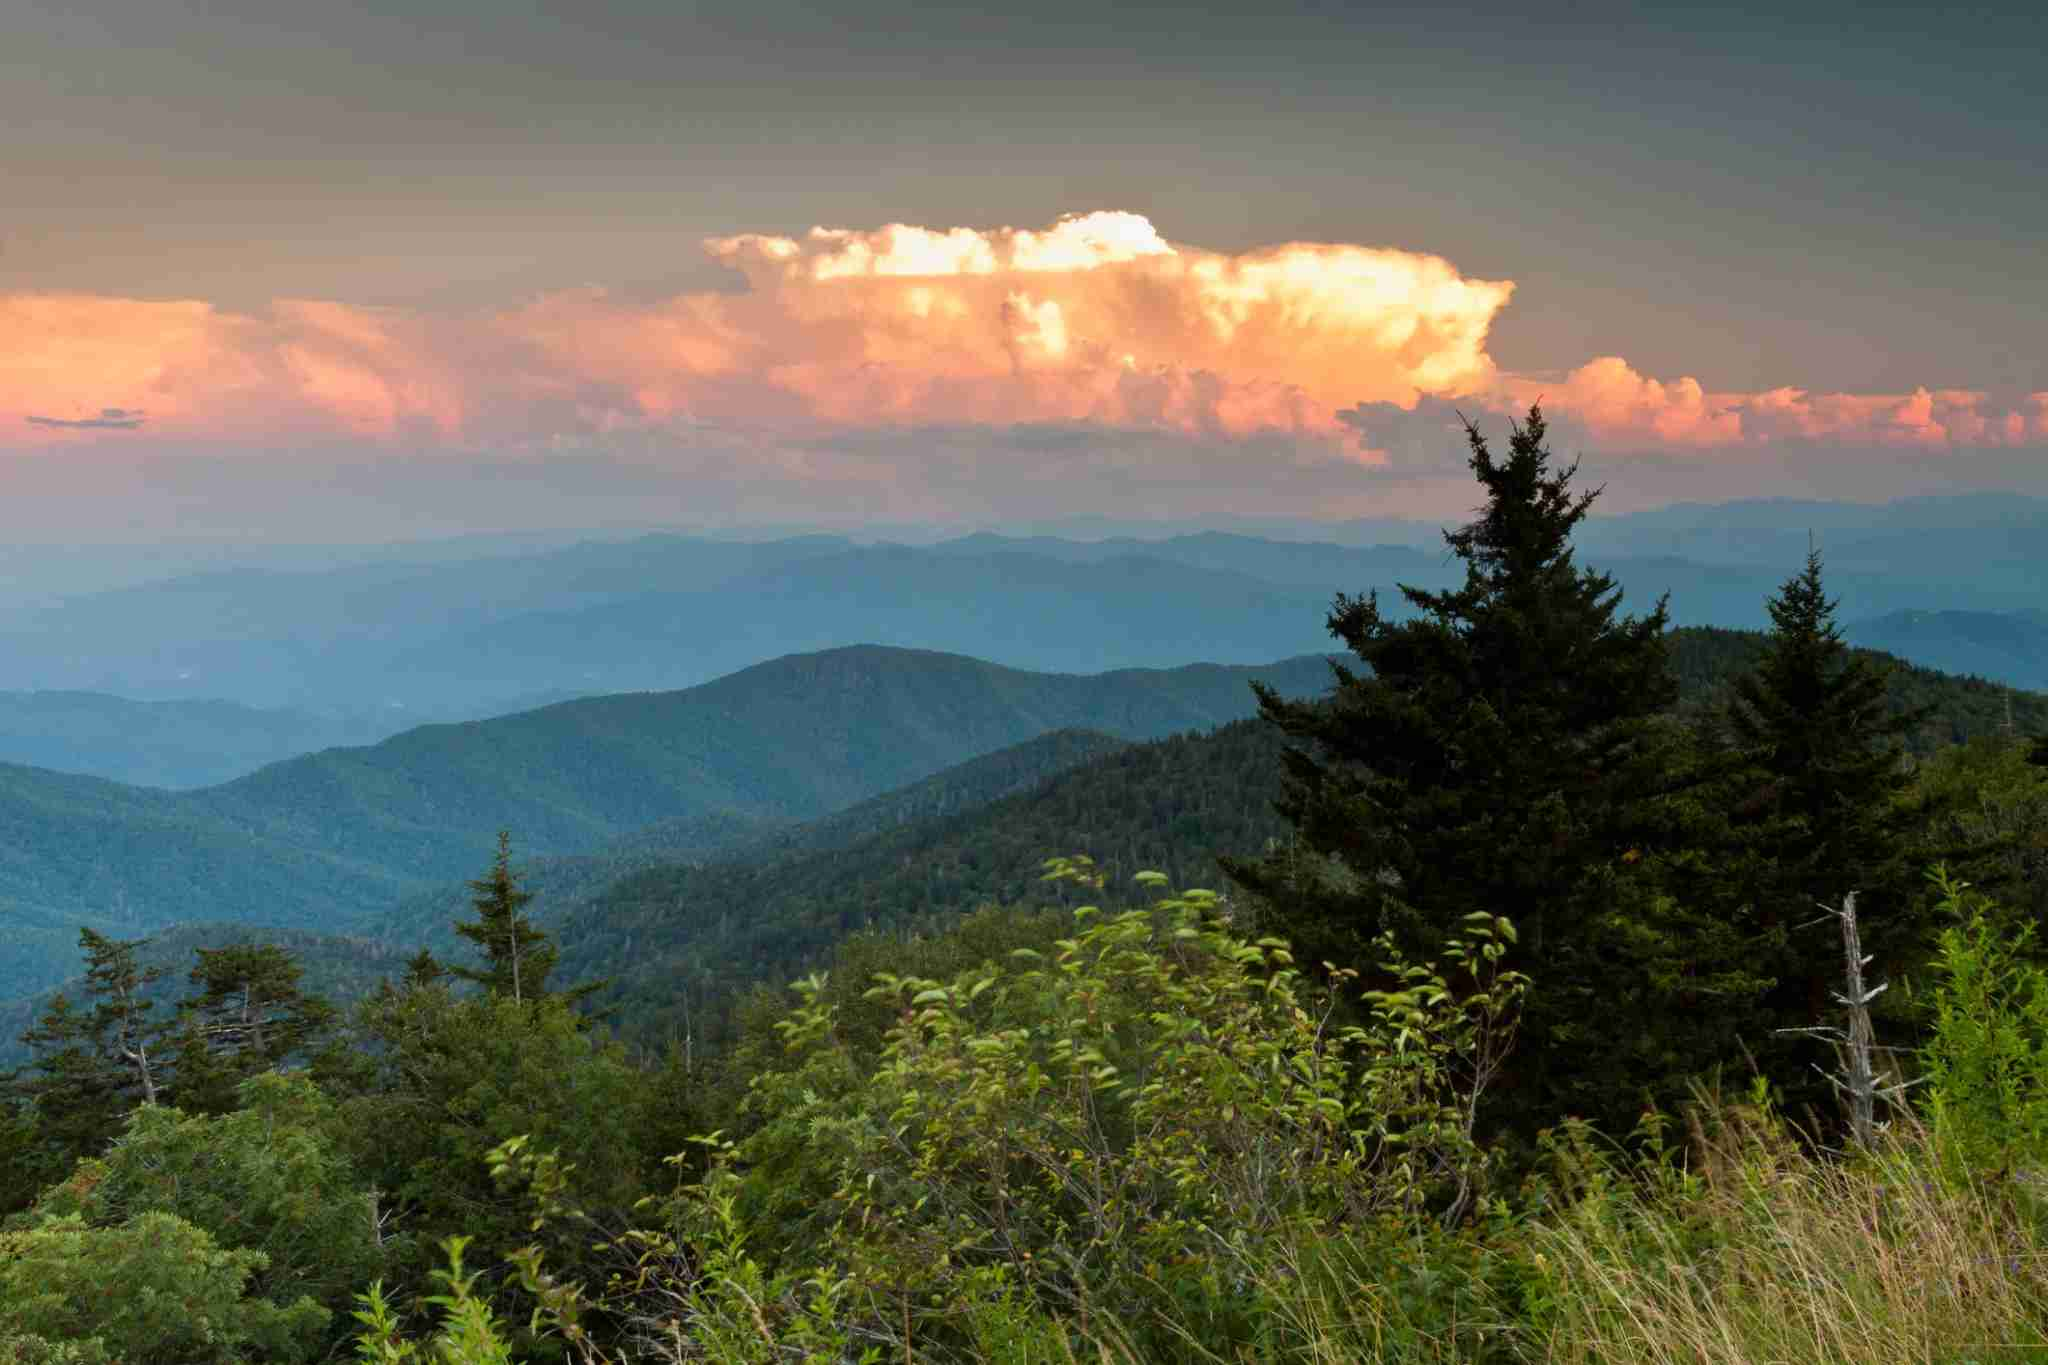 Sunset from Clingmans Dome in Great Smoky Mountains National Park. Image courtesy of Wray Sinclair via Getty Images.